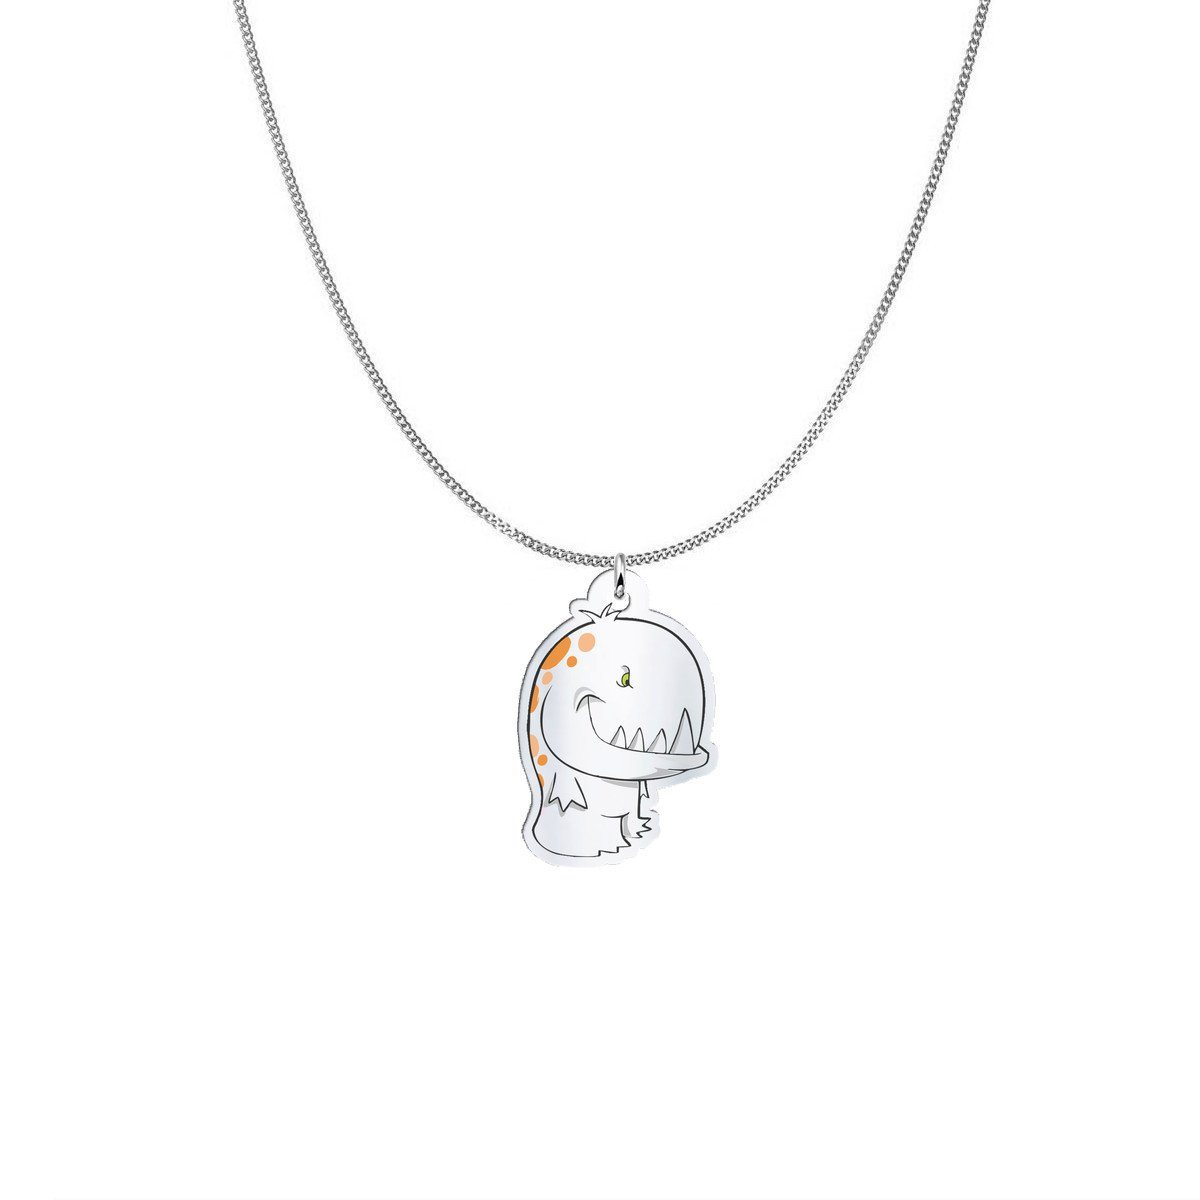 Pendant - Donny The Multiple Sclerosis Monster Silver Necklace